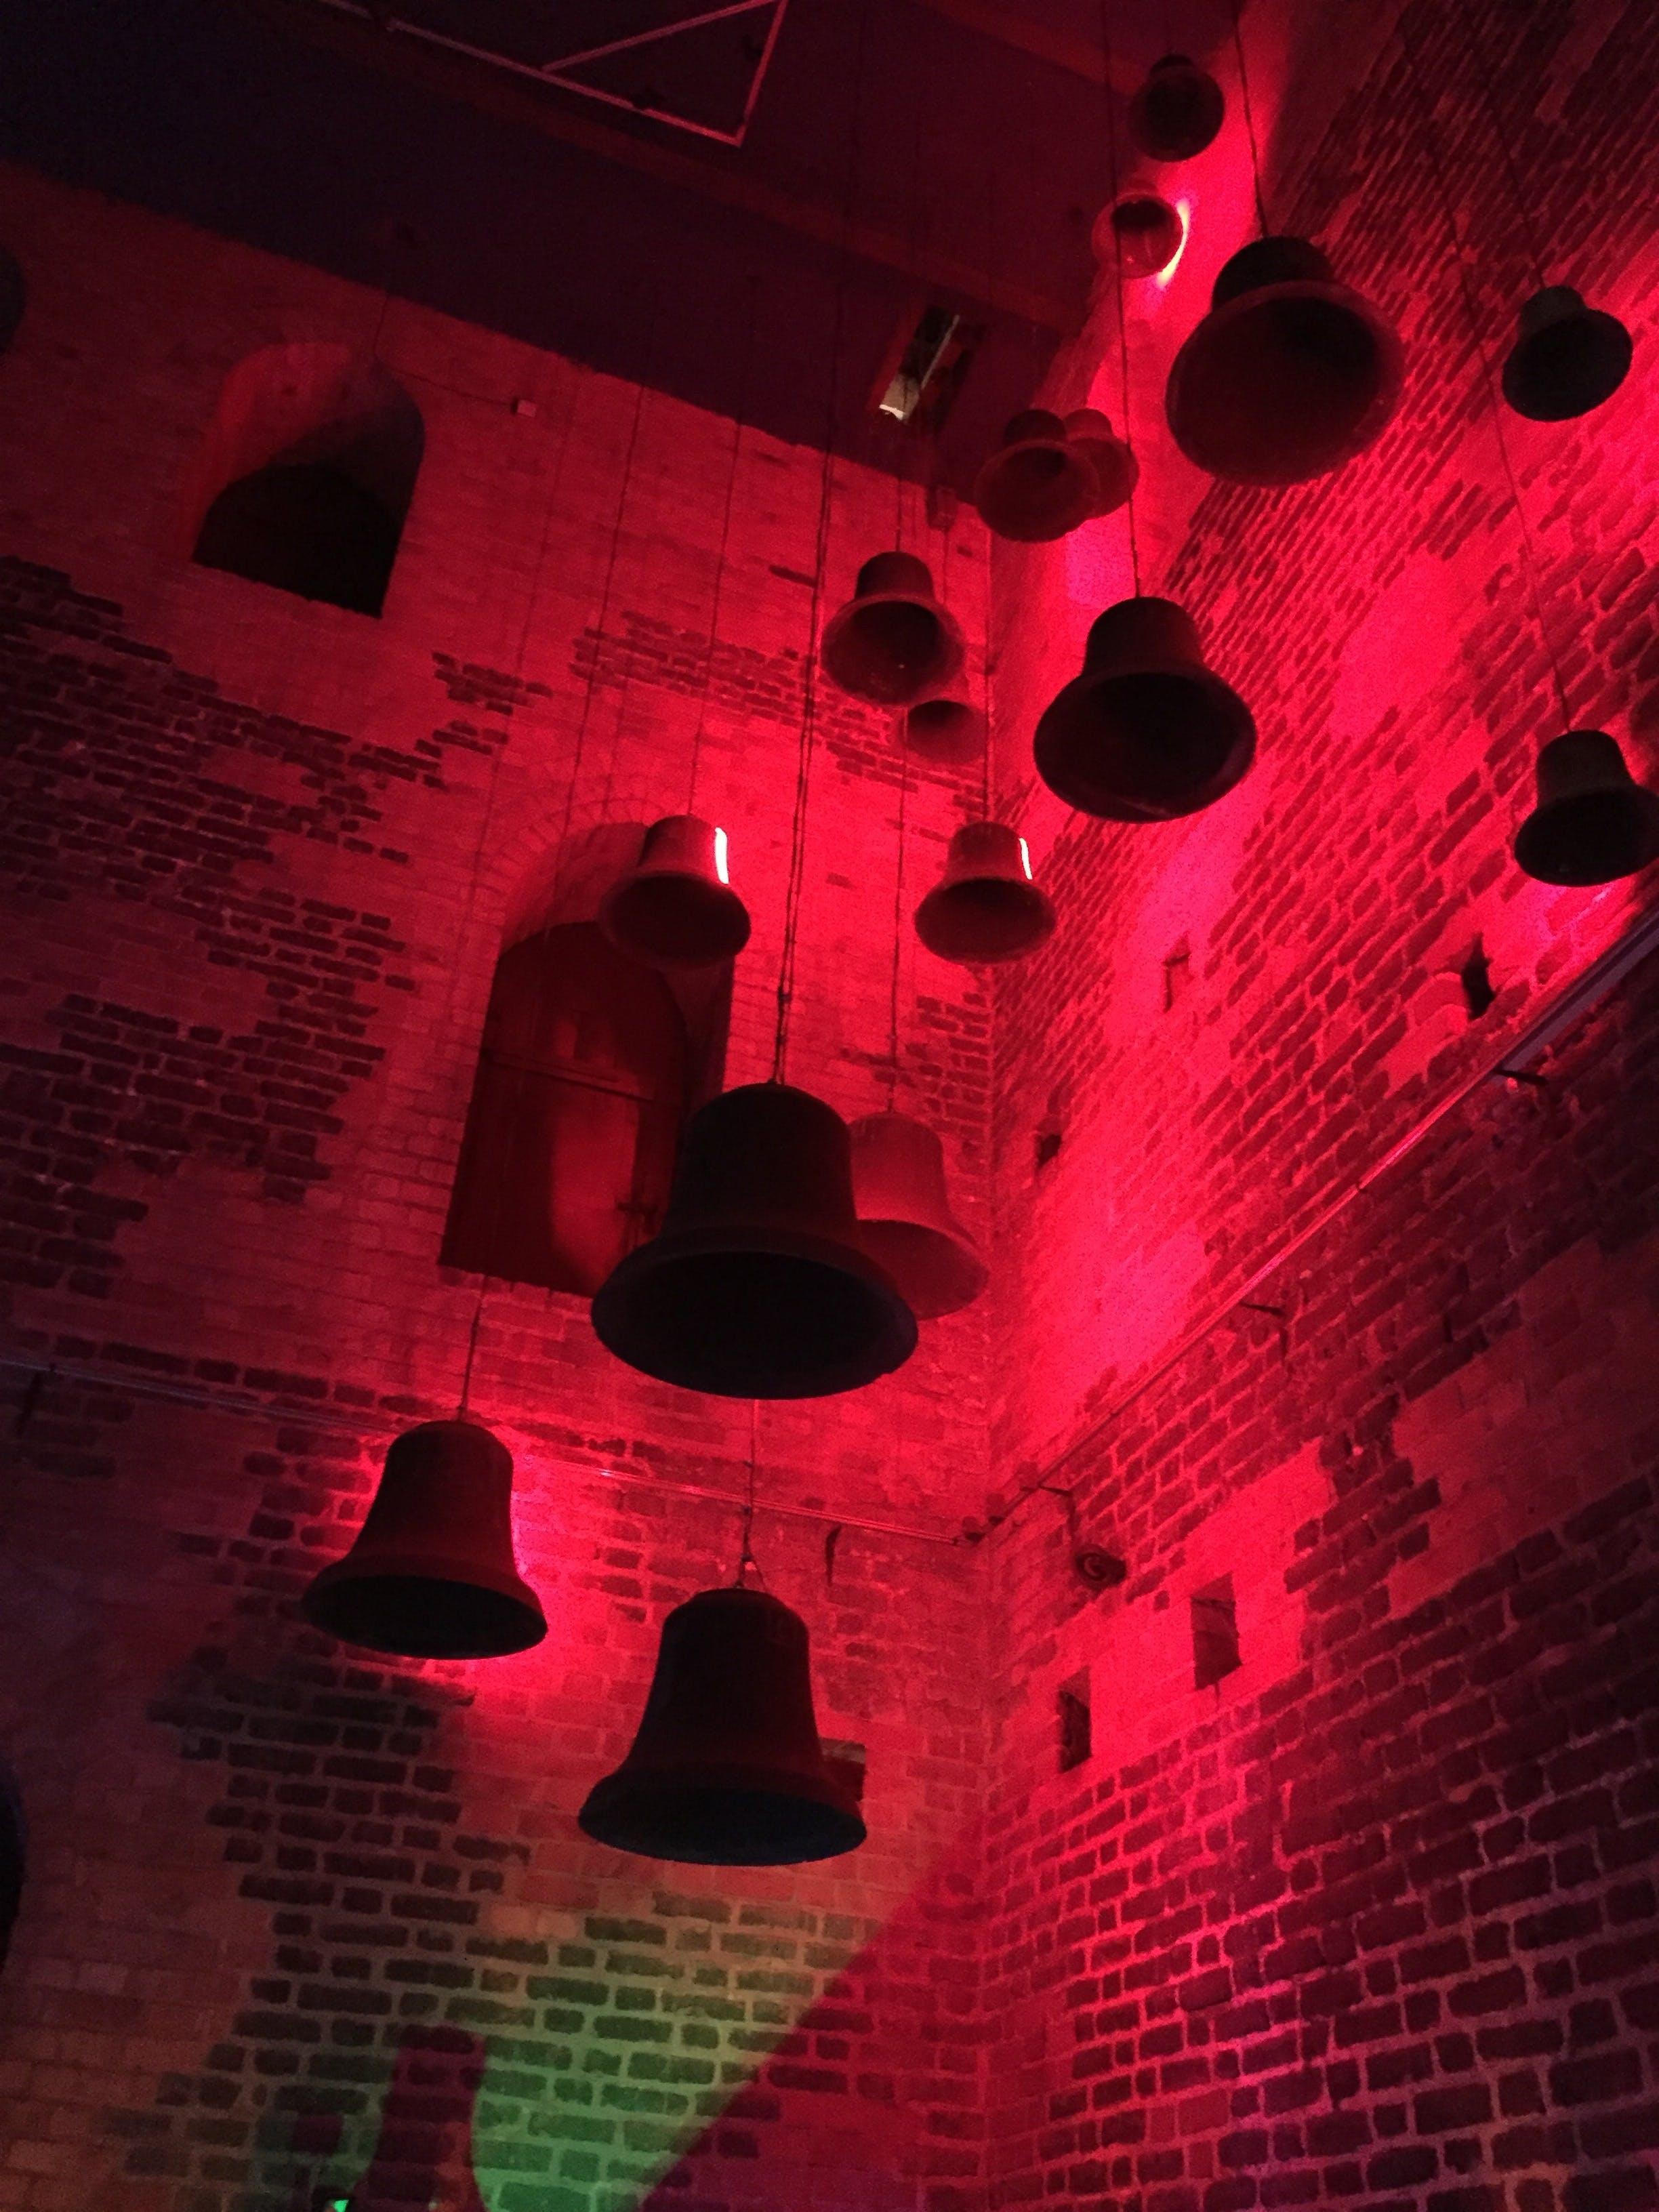 Free stock photo of bells, church tower, red ligh